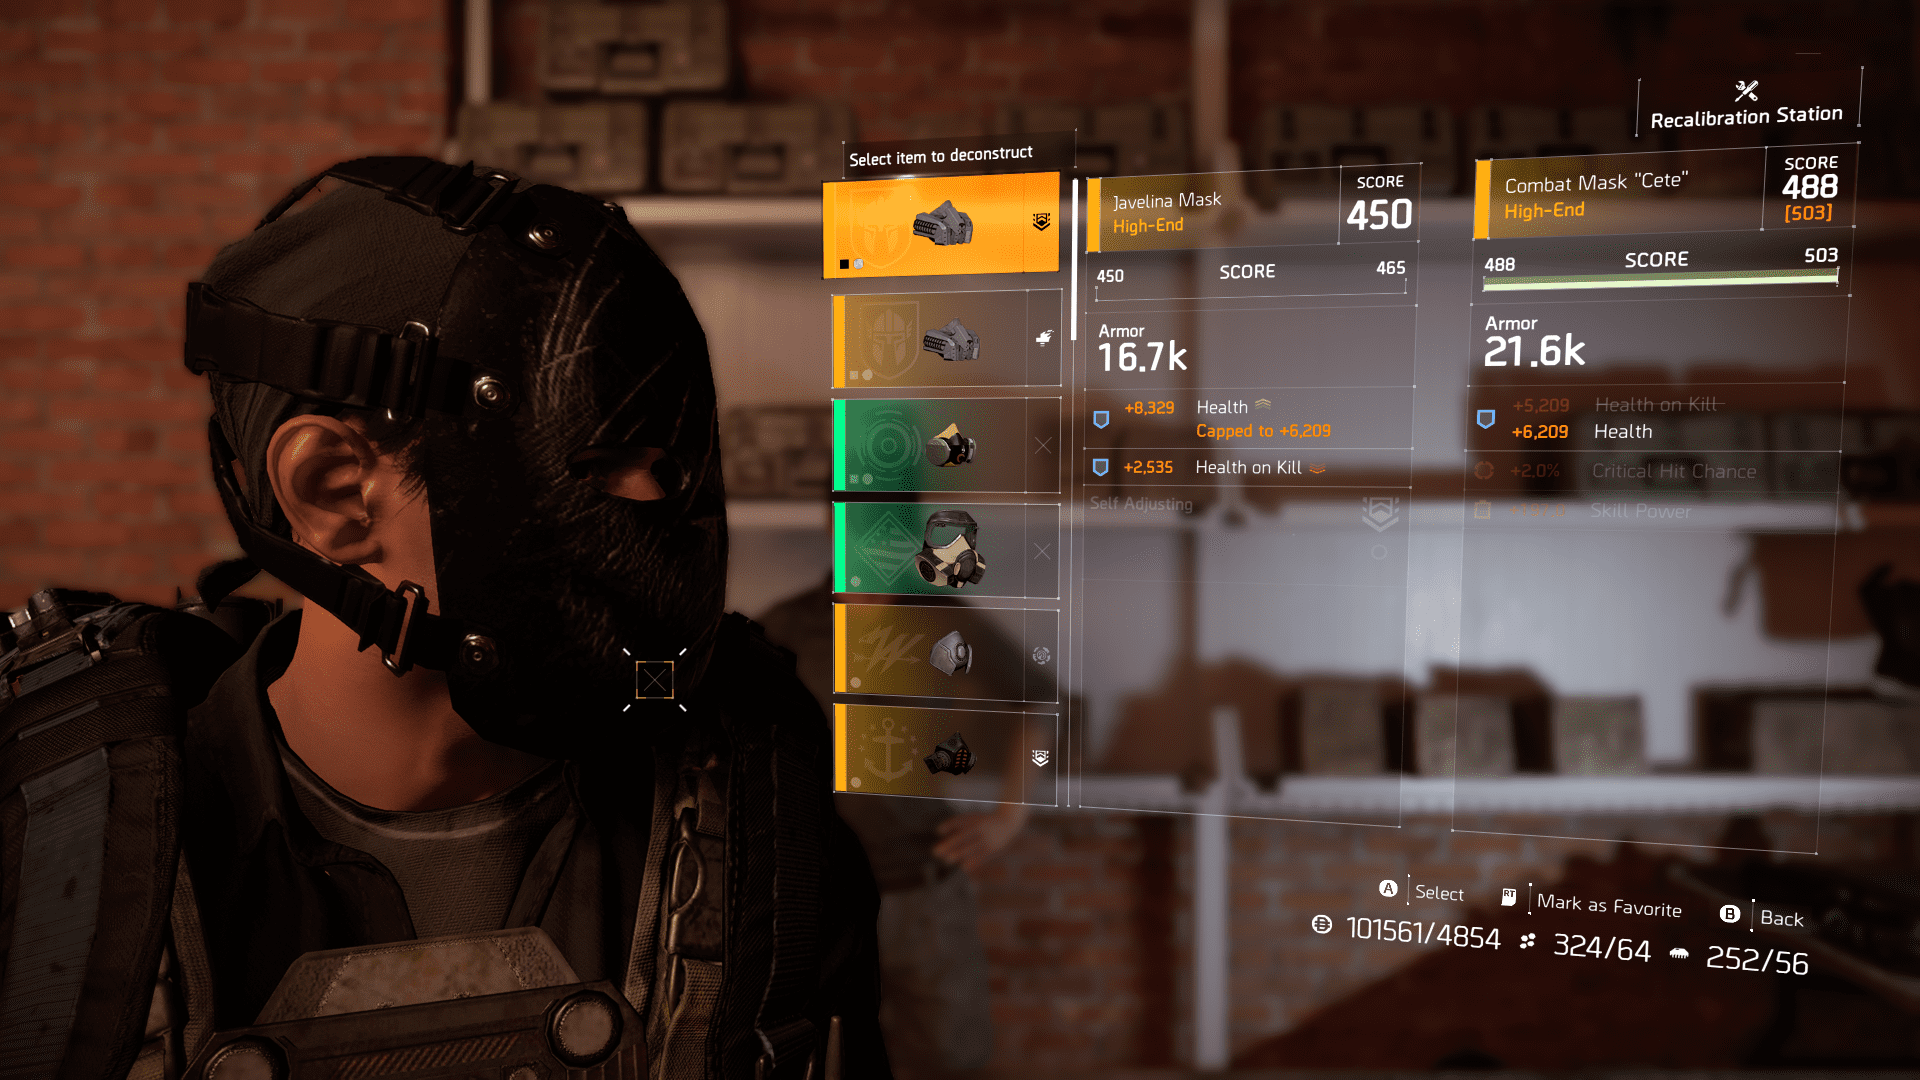 How to reach Gear score 500 quickly in The Division 2